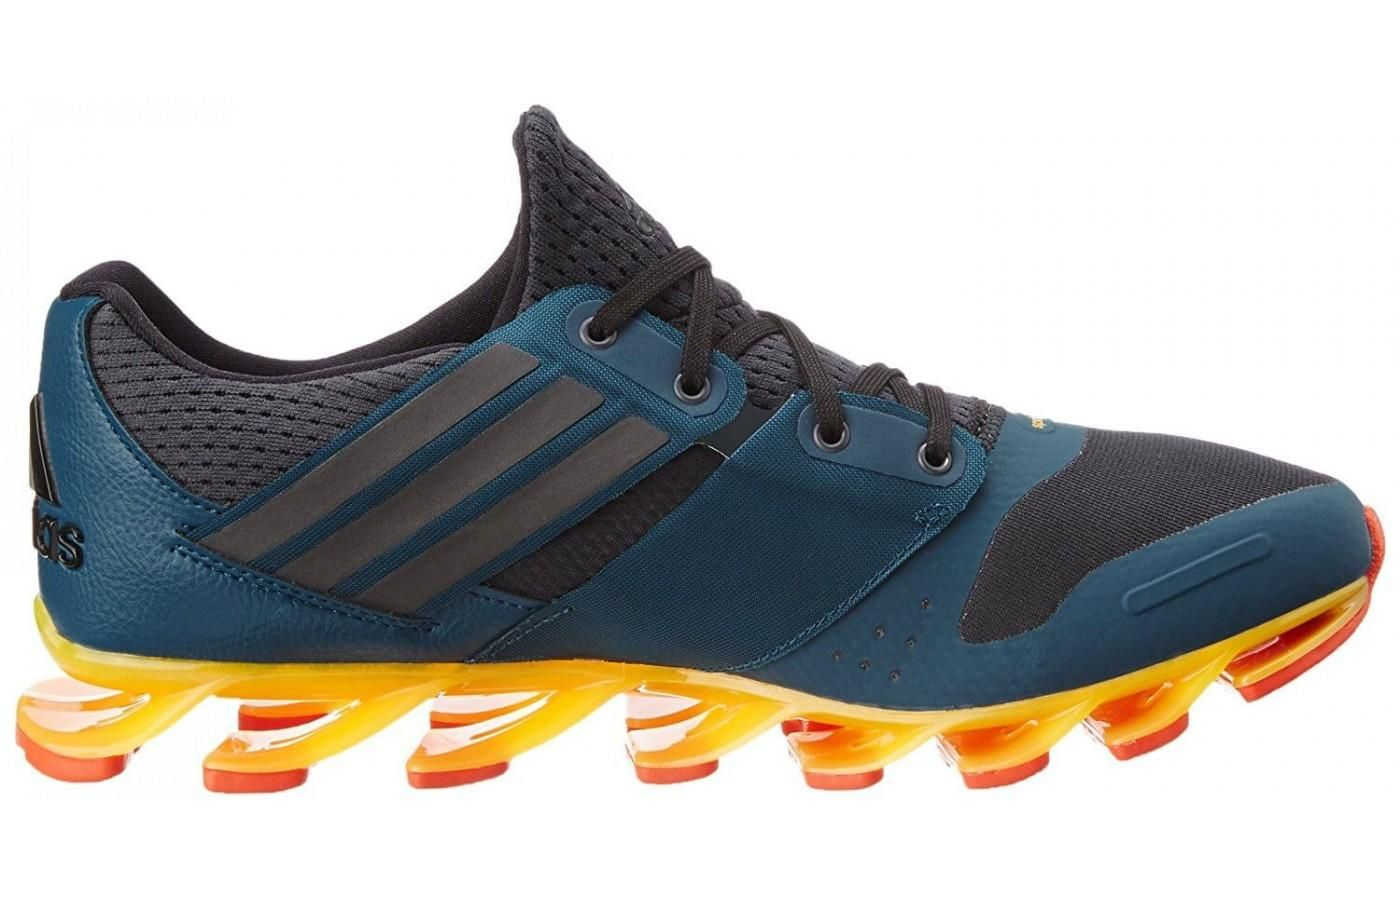 pas mal 41dc4 c3ee1 Adidas Springblade Solyce | Running Shoes in 2019 | Adidas ...